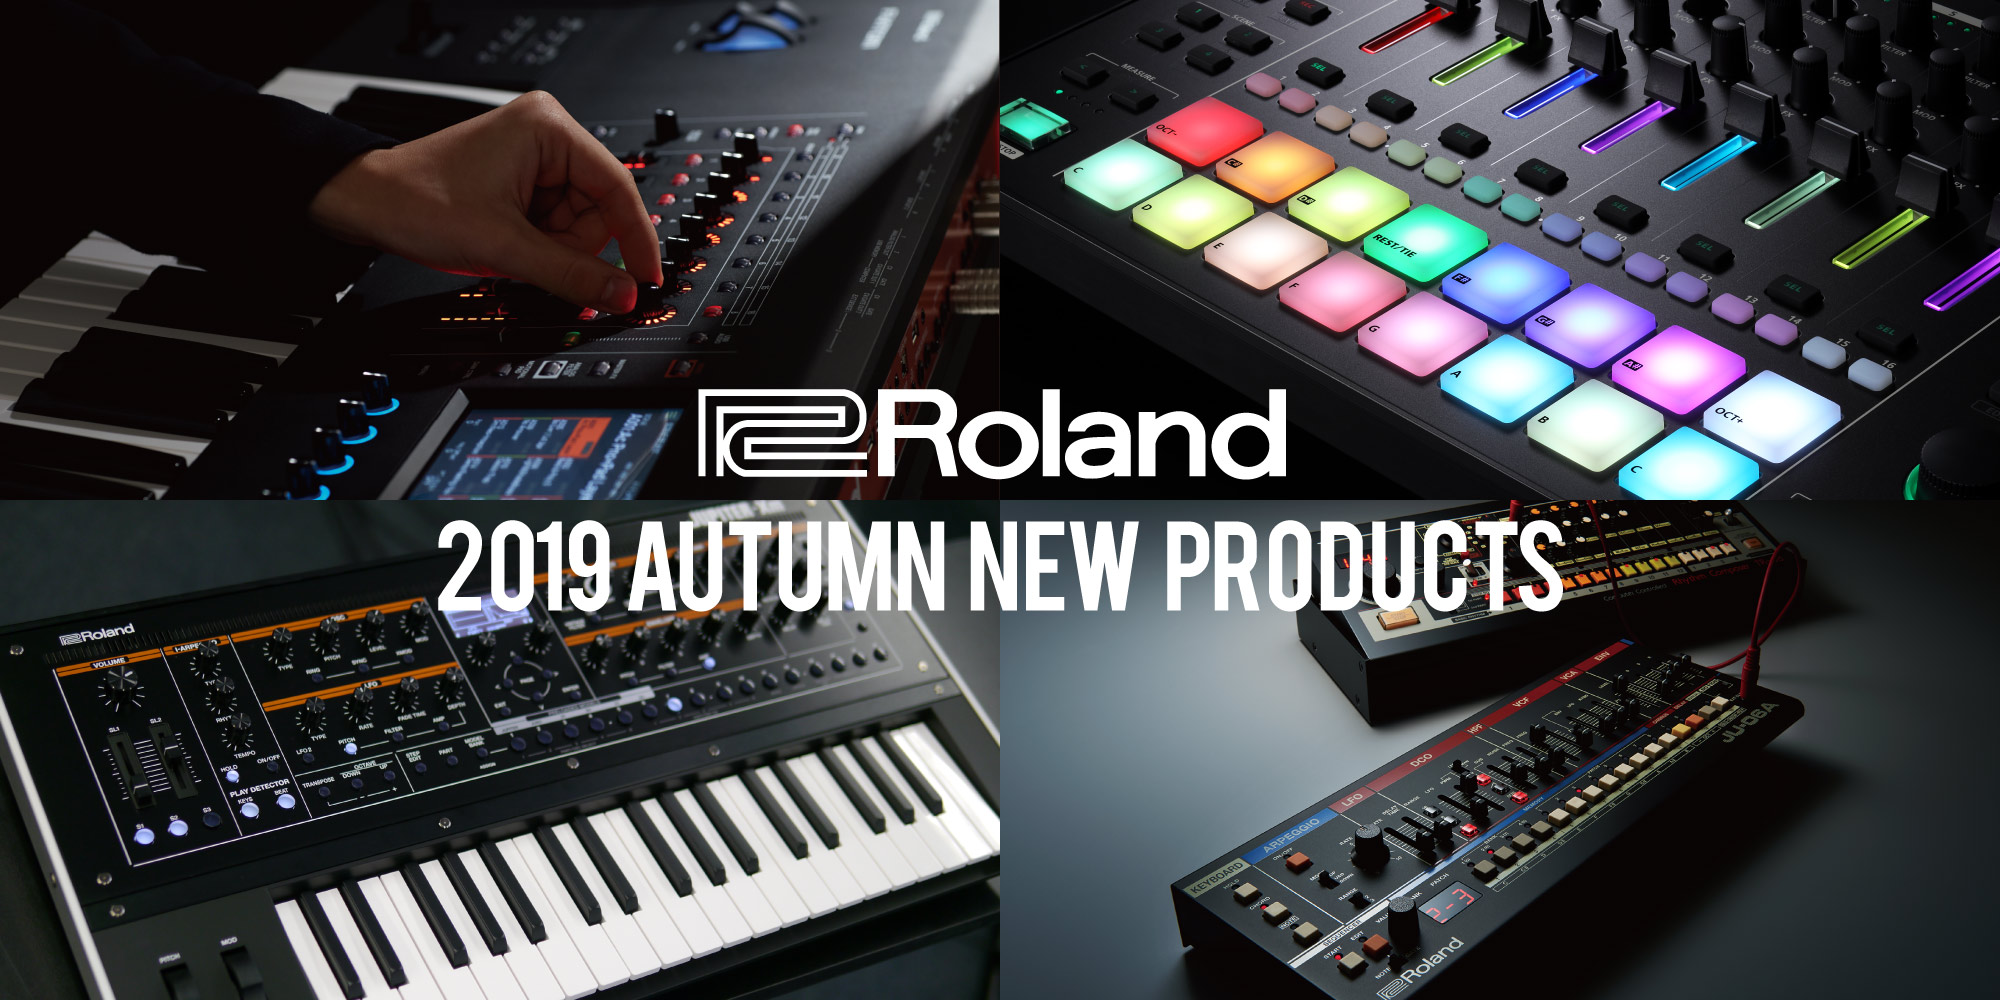 【Roland 2019 Autumn New Products】